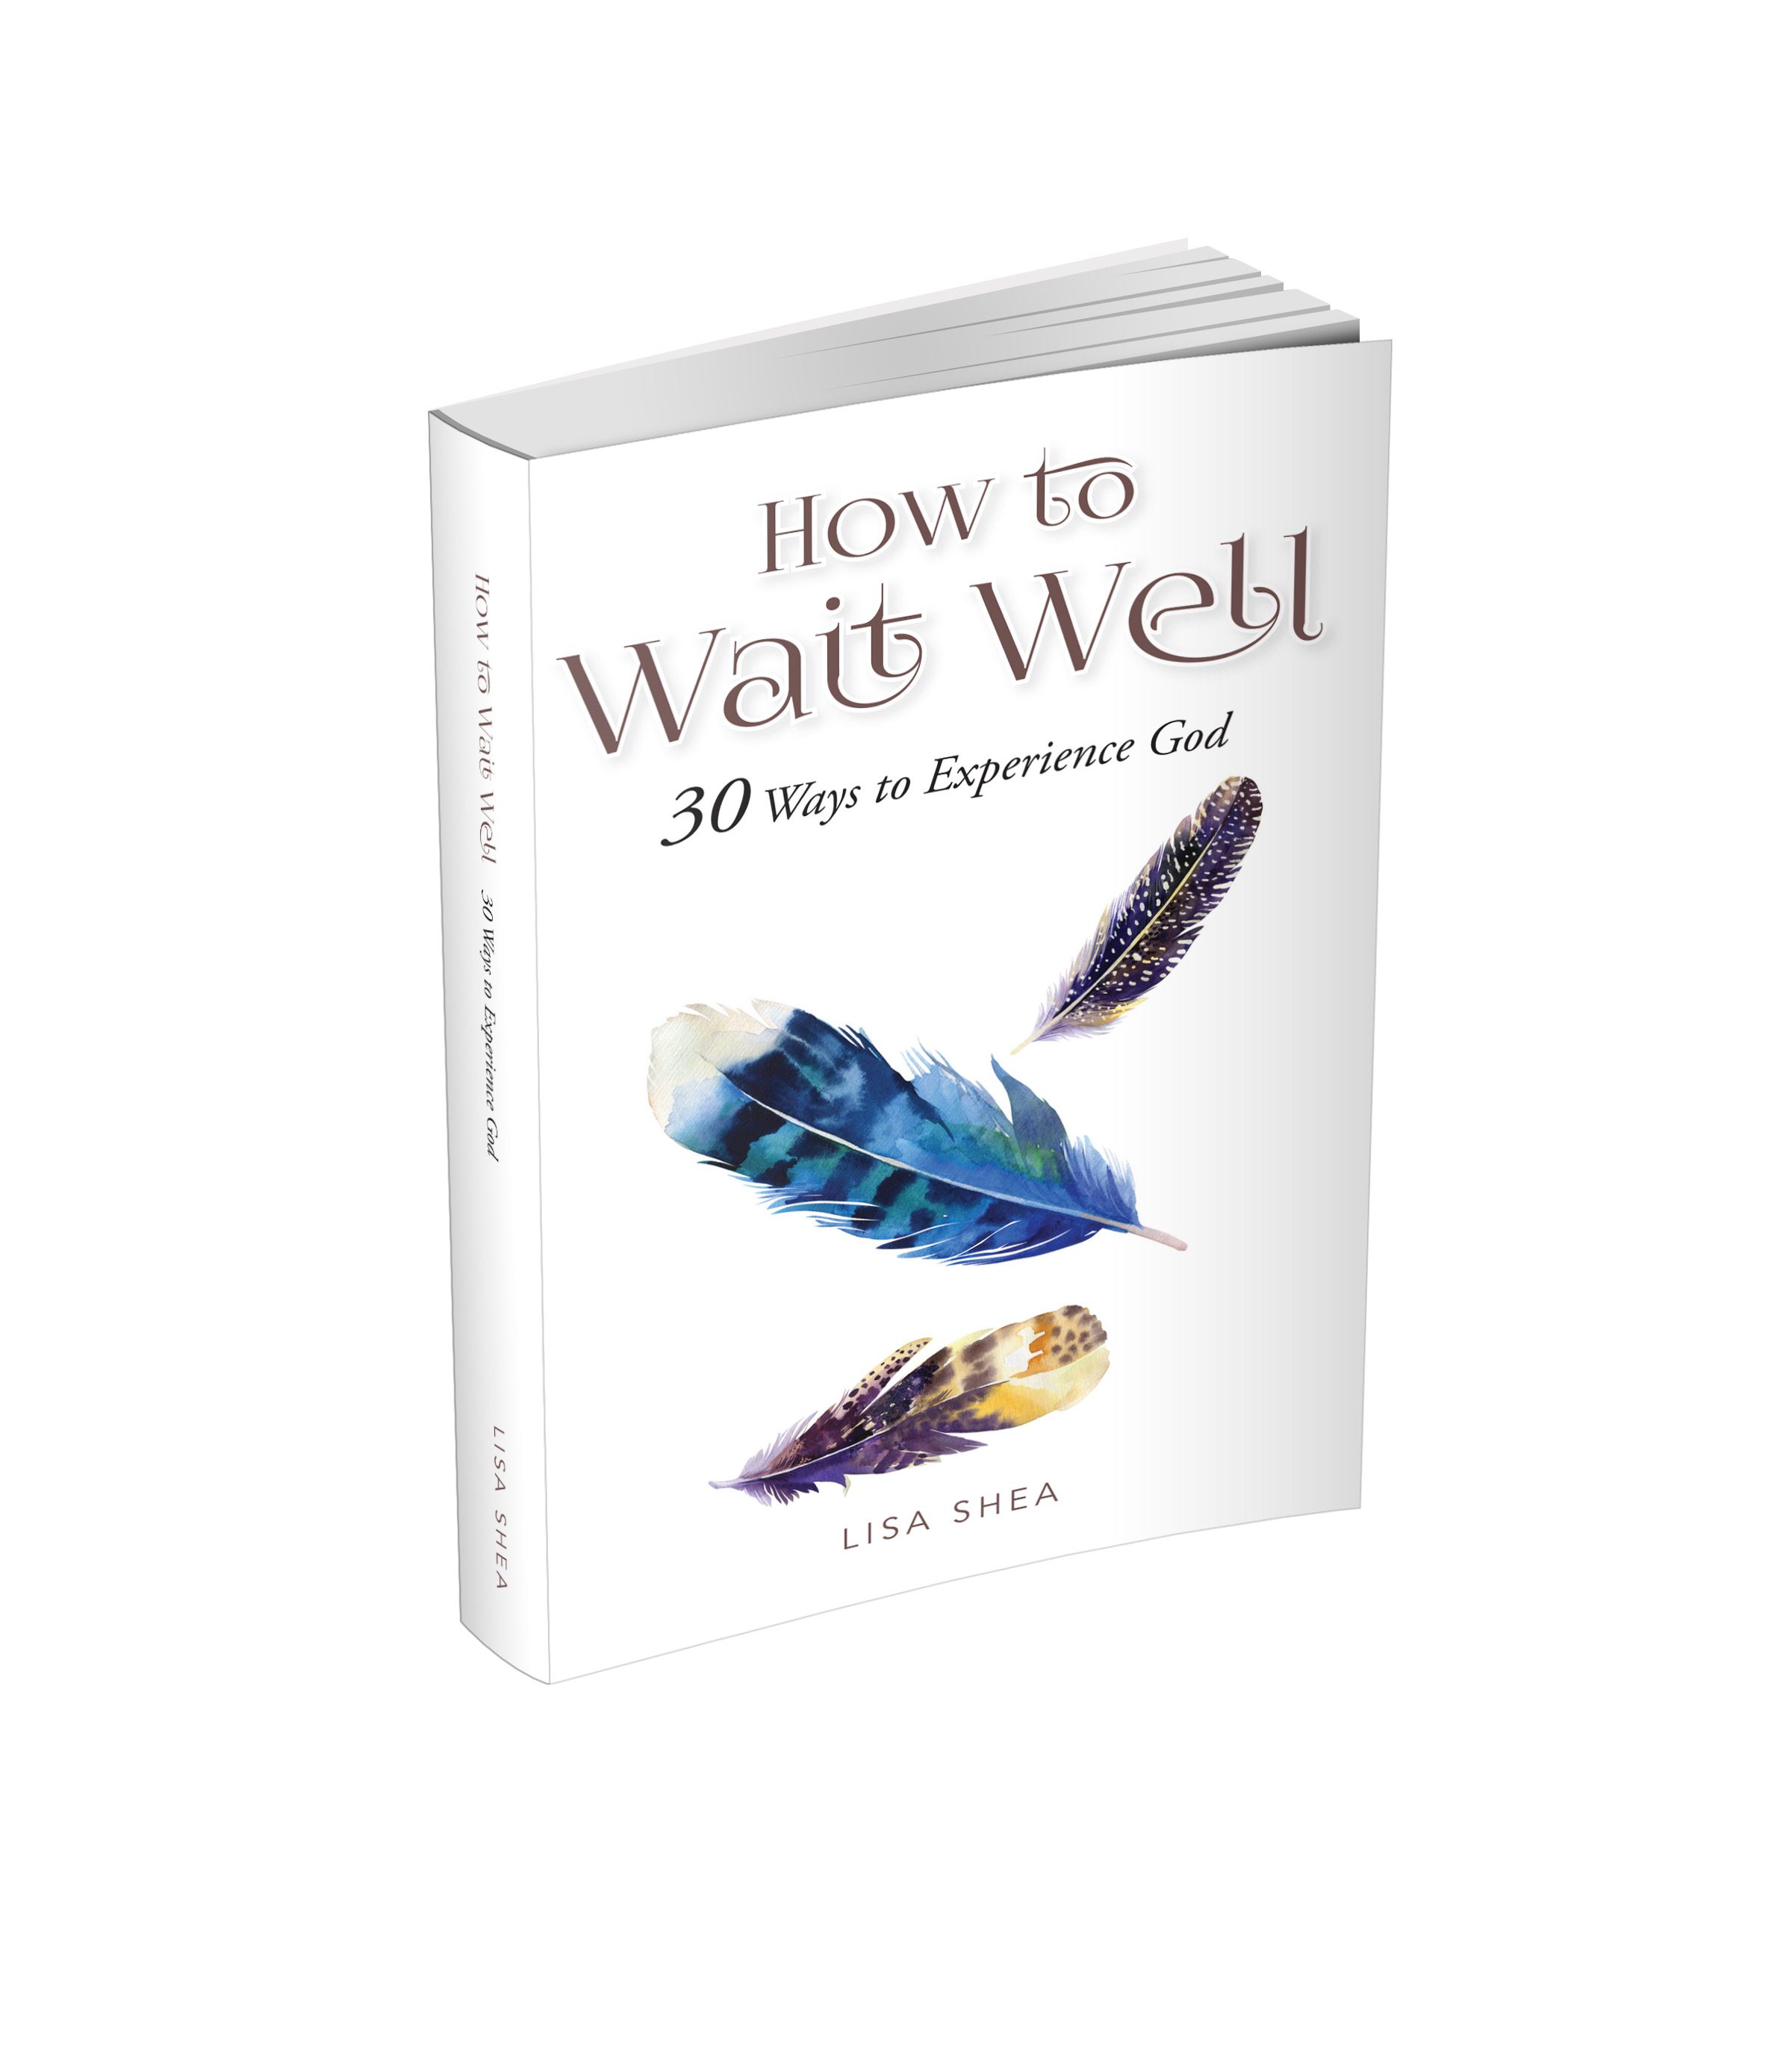 How to Wait Well: 30 Ways to Experience God by Lisa Shea